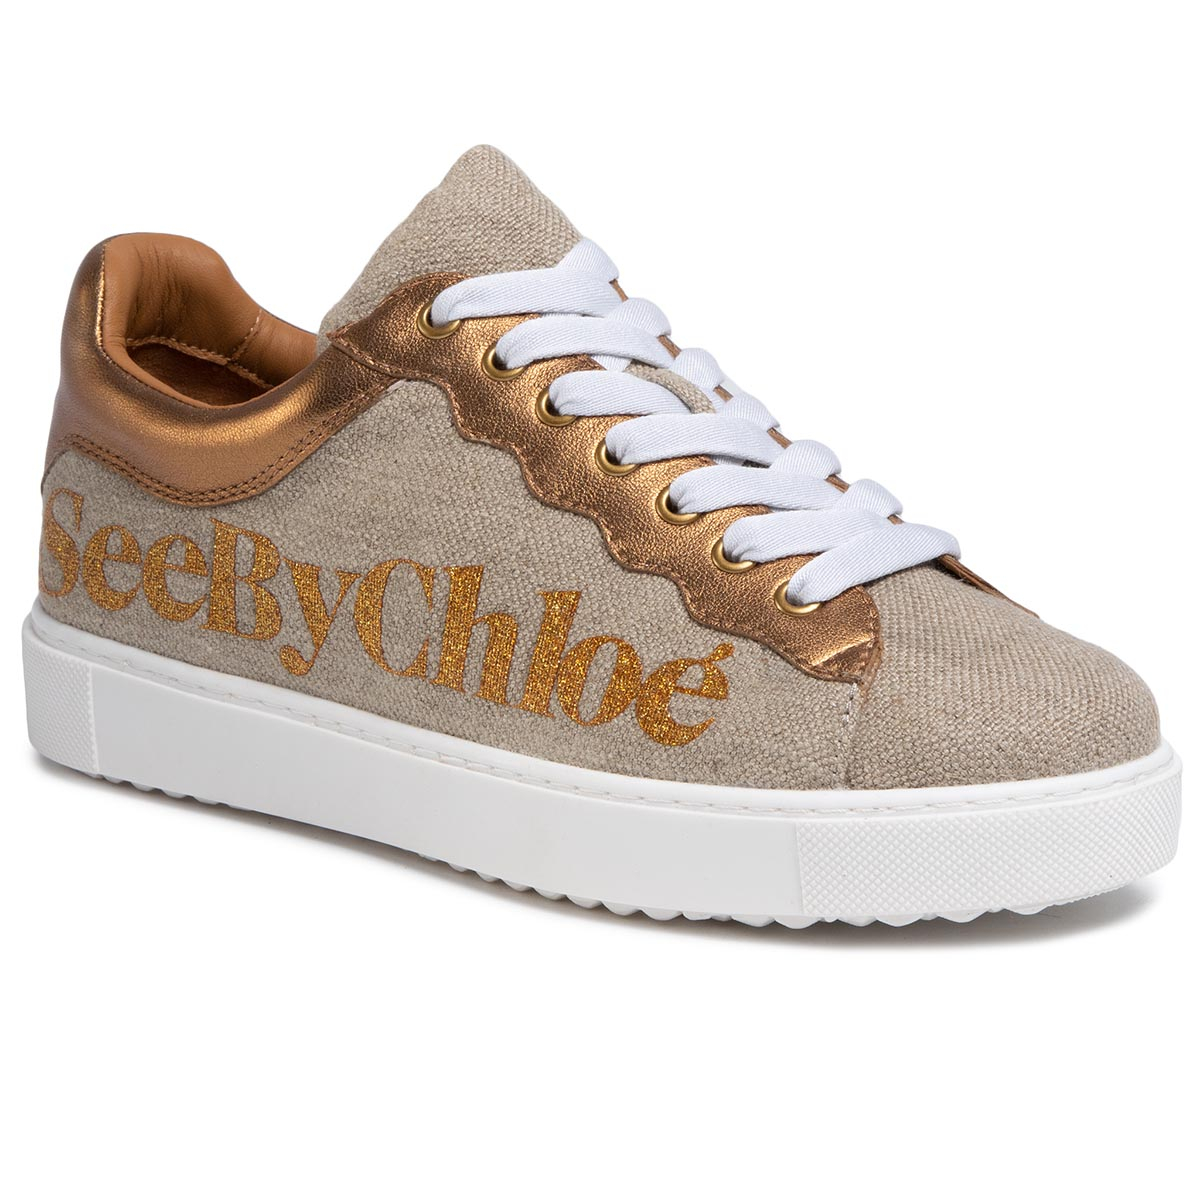 Sneakers SEE BY CHLOÉ - SB34151A Fabric Oasi 030/Nappa Vintage 087/Logo